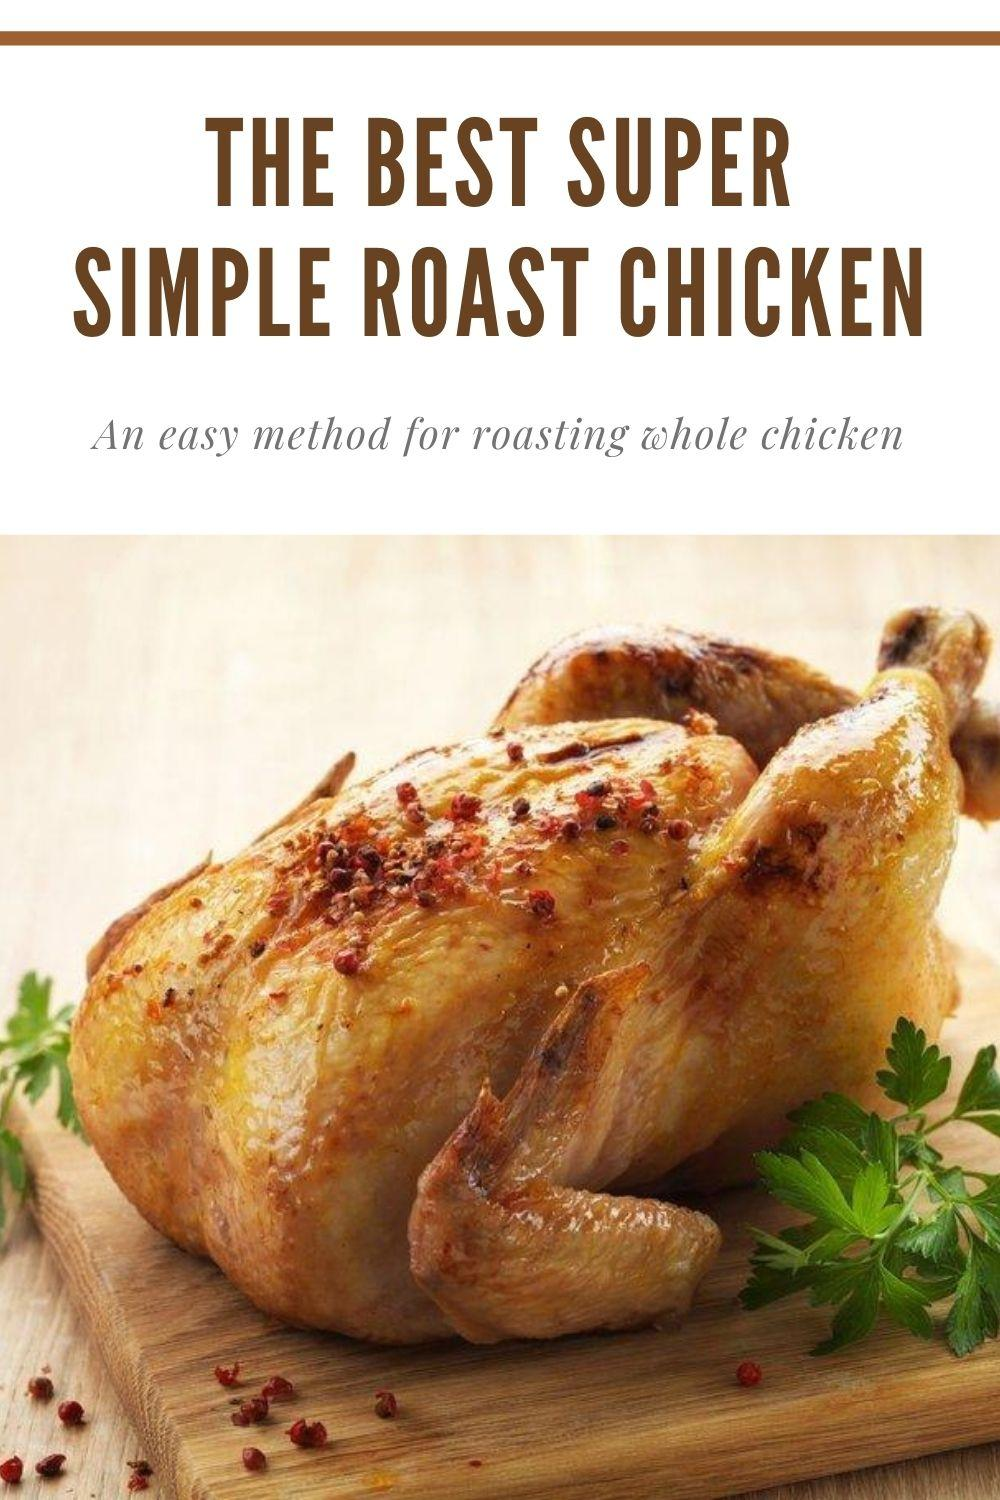 One of the Best chicken recipes graphic